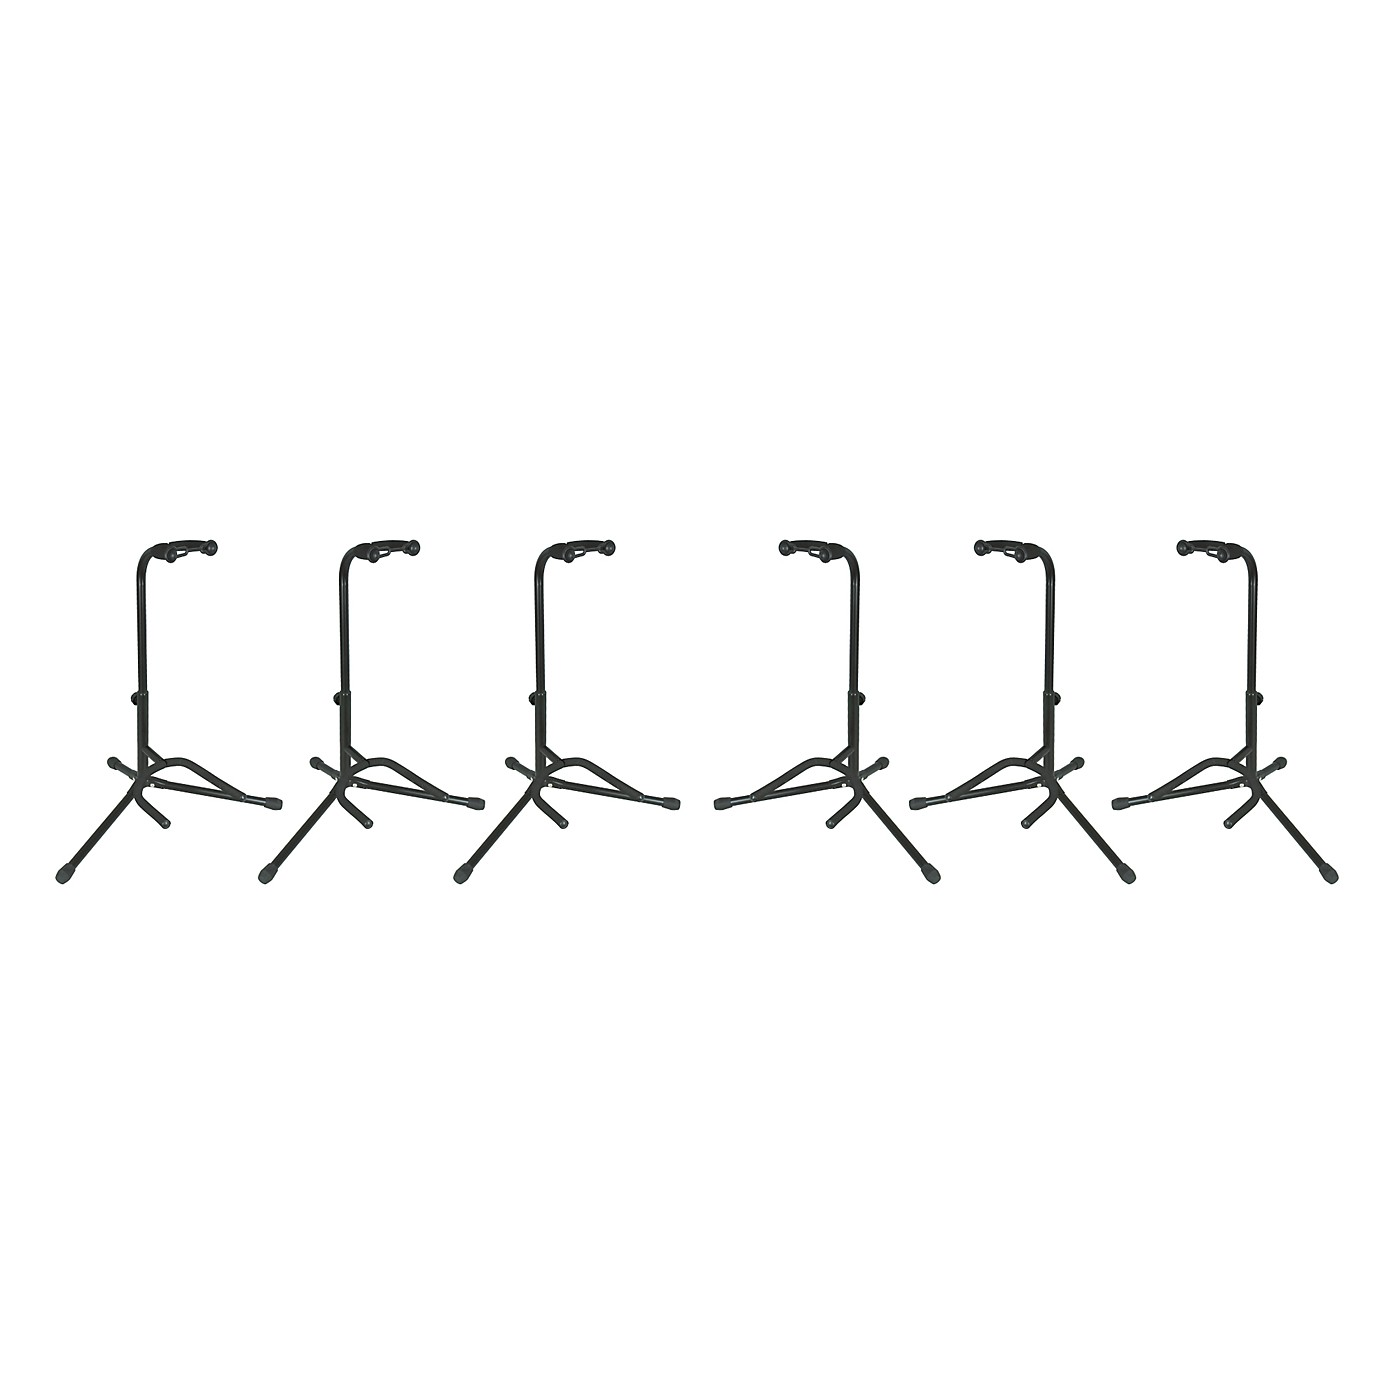 Musician's Gear Electric, Acoustic and Bass Guitar Stands (6-Pack) thumbnail